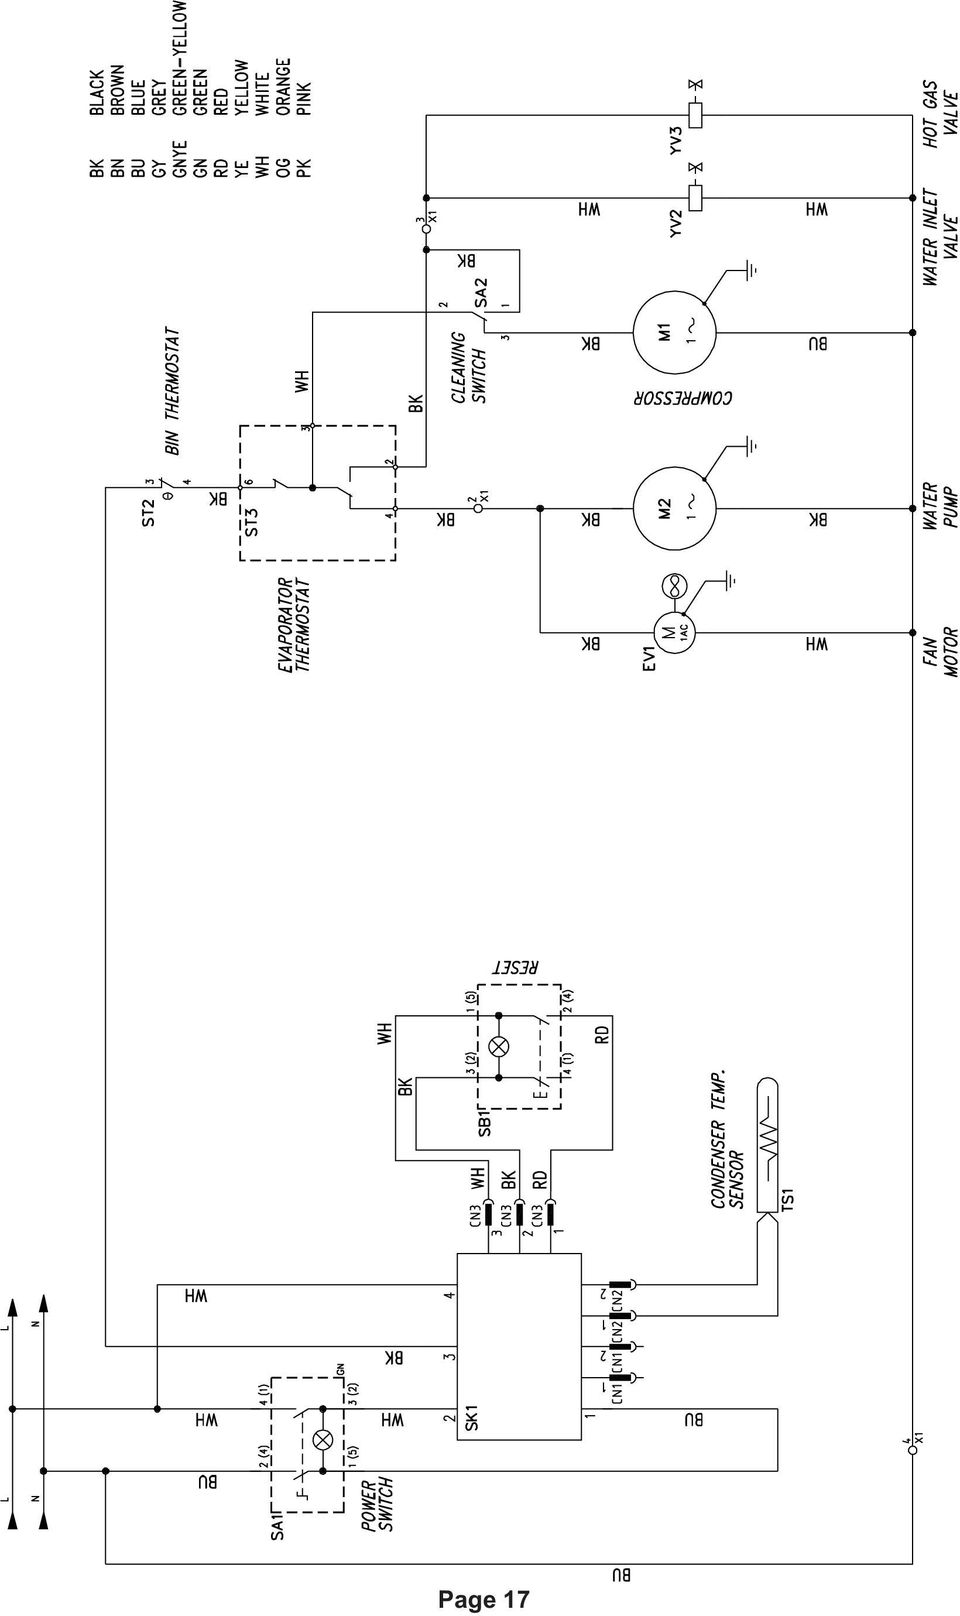 Ice O Matic Wiring Diagram - Data Wiring Diagram